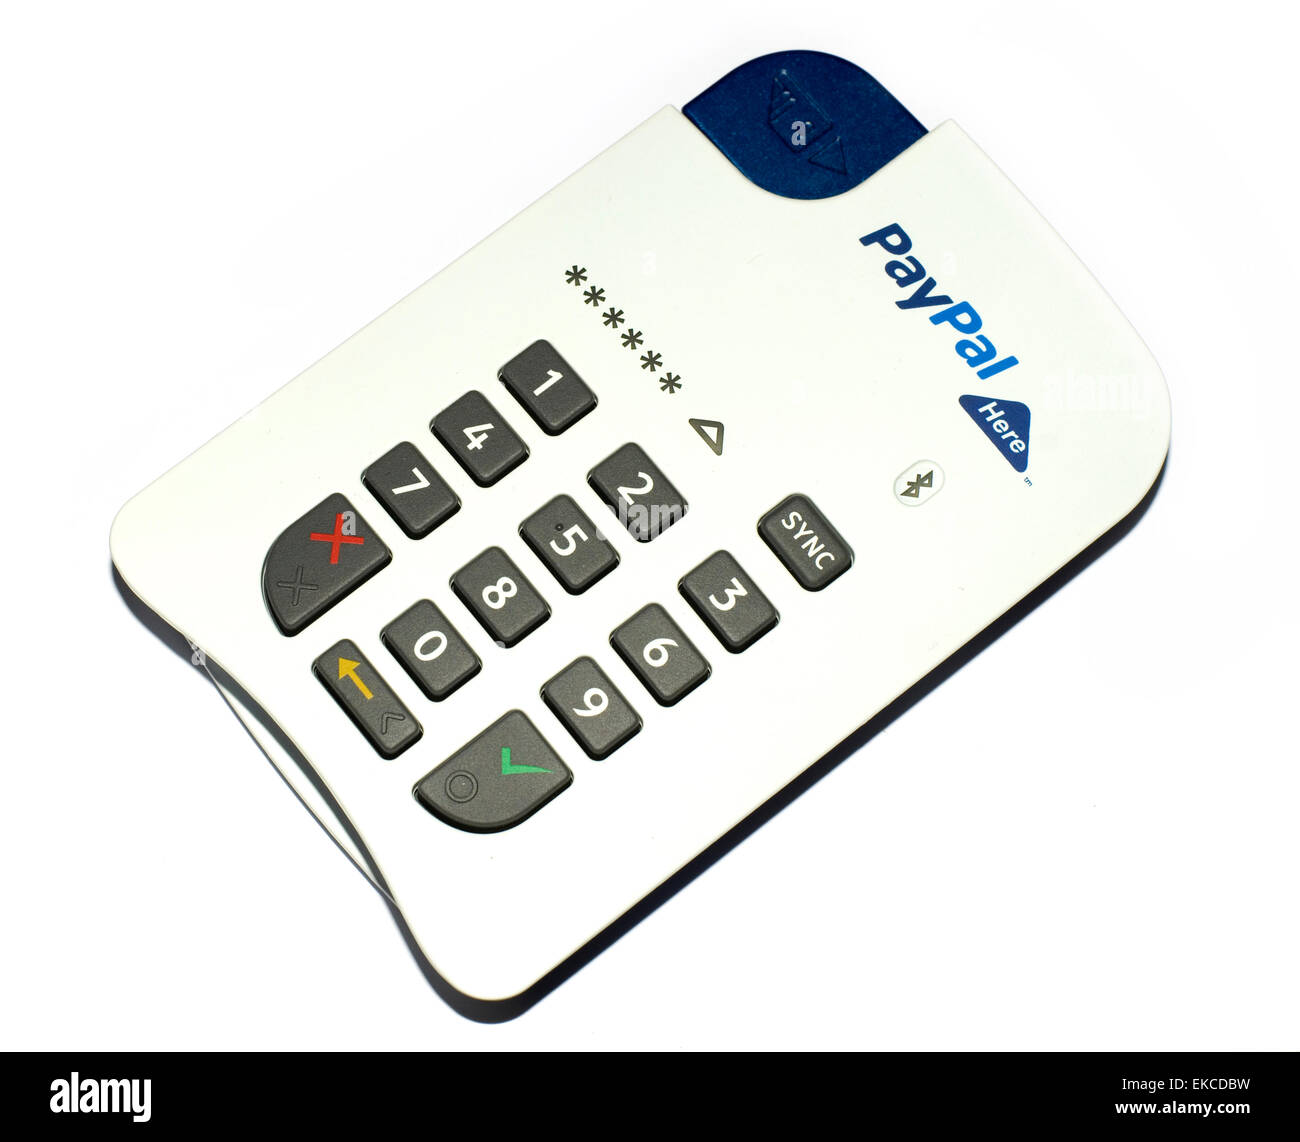 paypal here mobile bluetooth card reader on white background allows credit card payments to be - Paypal Credit Card Swiper